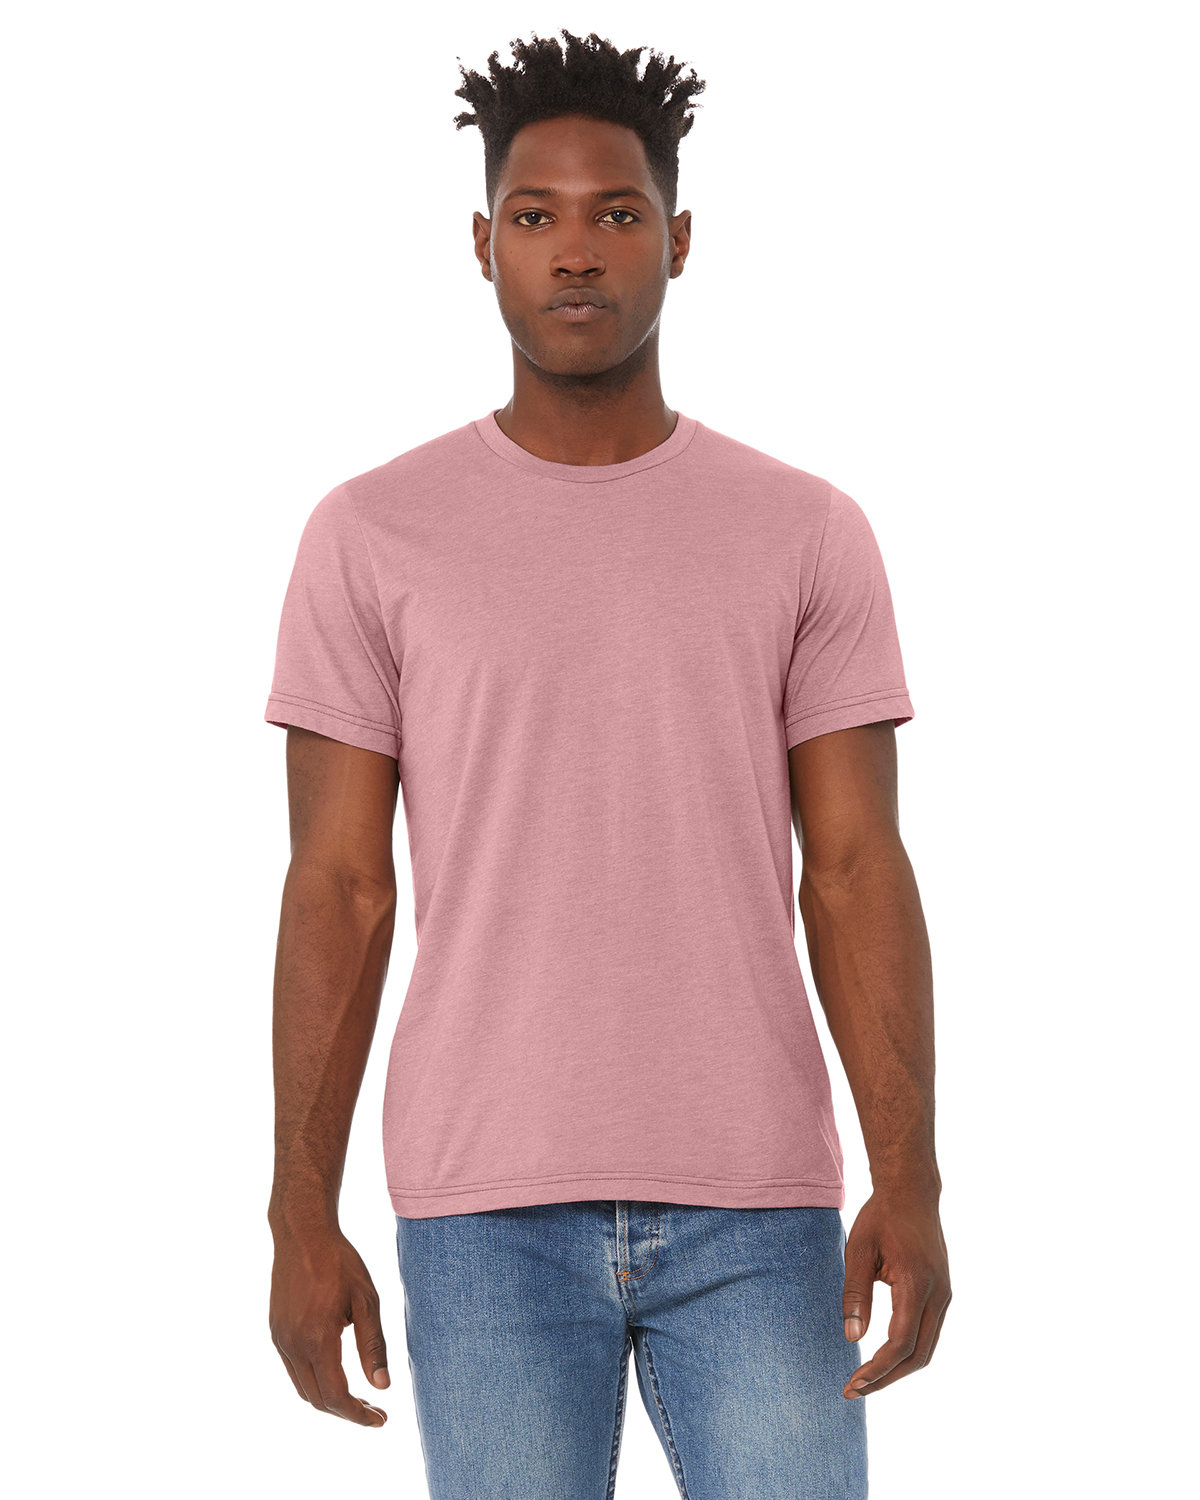 Bella + Canvas Unisex Heather CVC T-Shirt HEATHER ORCHID